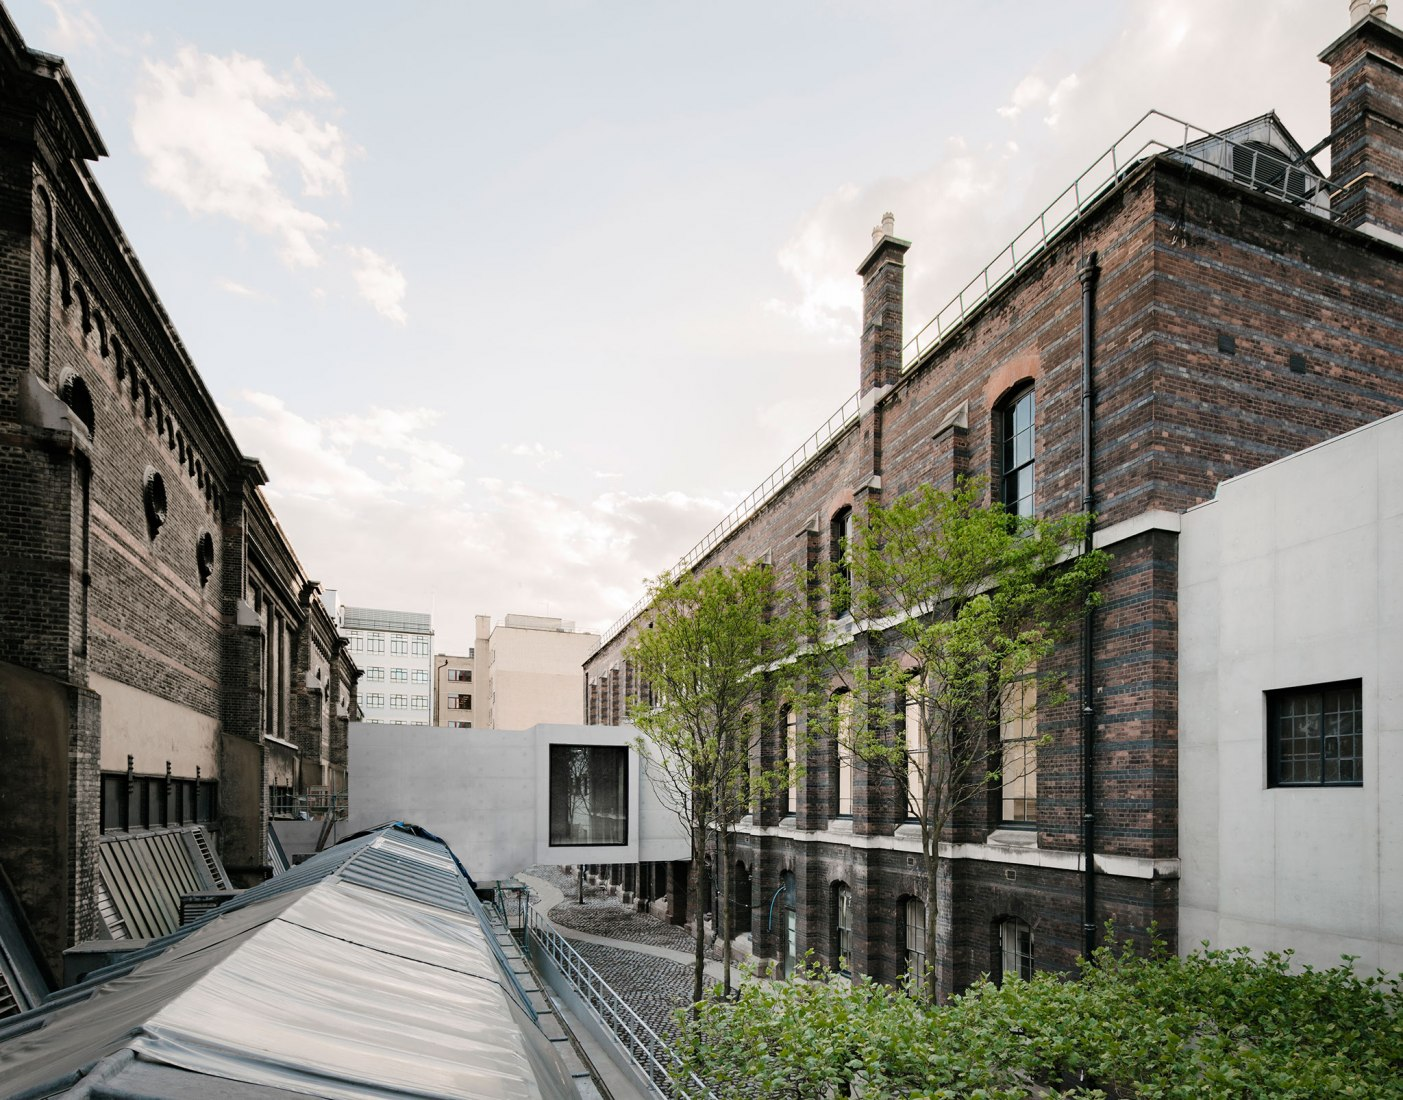 New bridge, linking the old buildings. Royal Academy of Arts by David Chipperfield. Photograph by Simon Menges